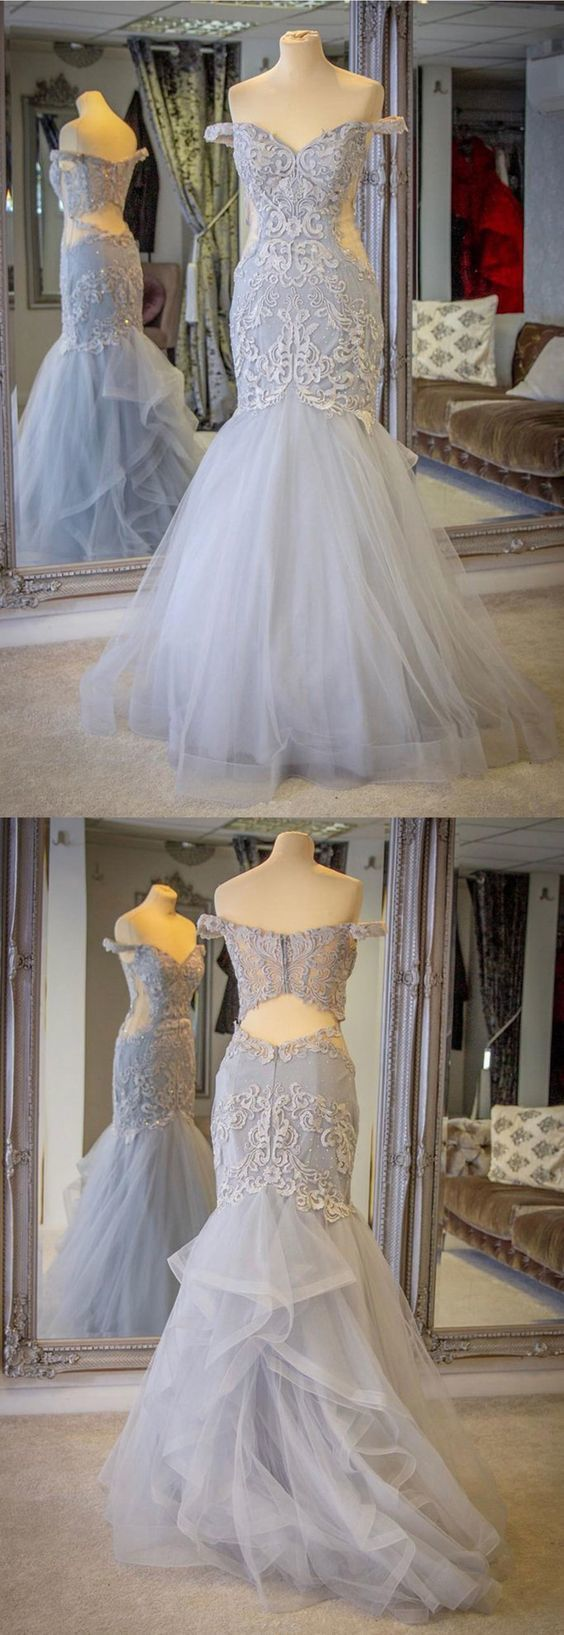 Custom Made Tulle Grey Mermaid Evening Dress, Formal Appliques Prom Dresses,